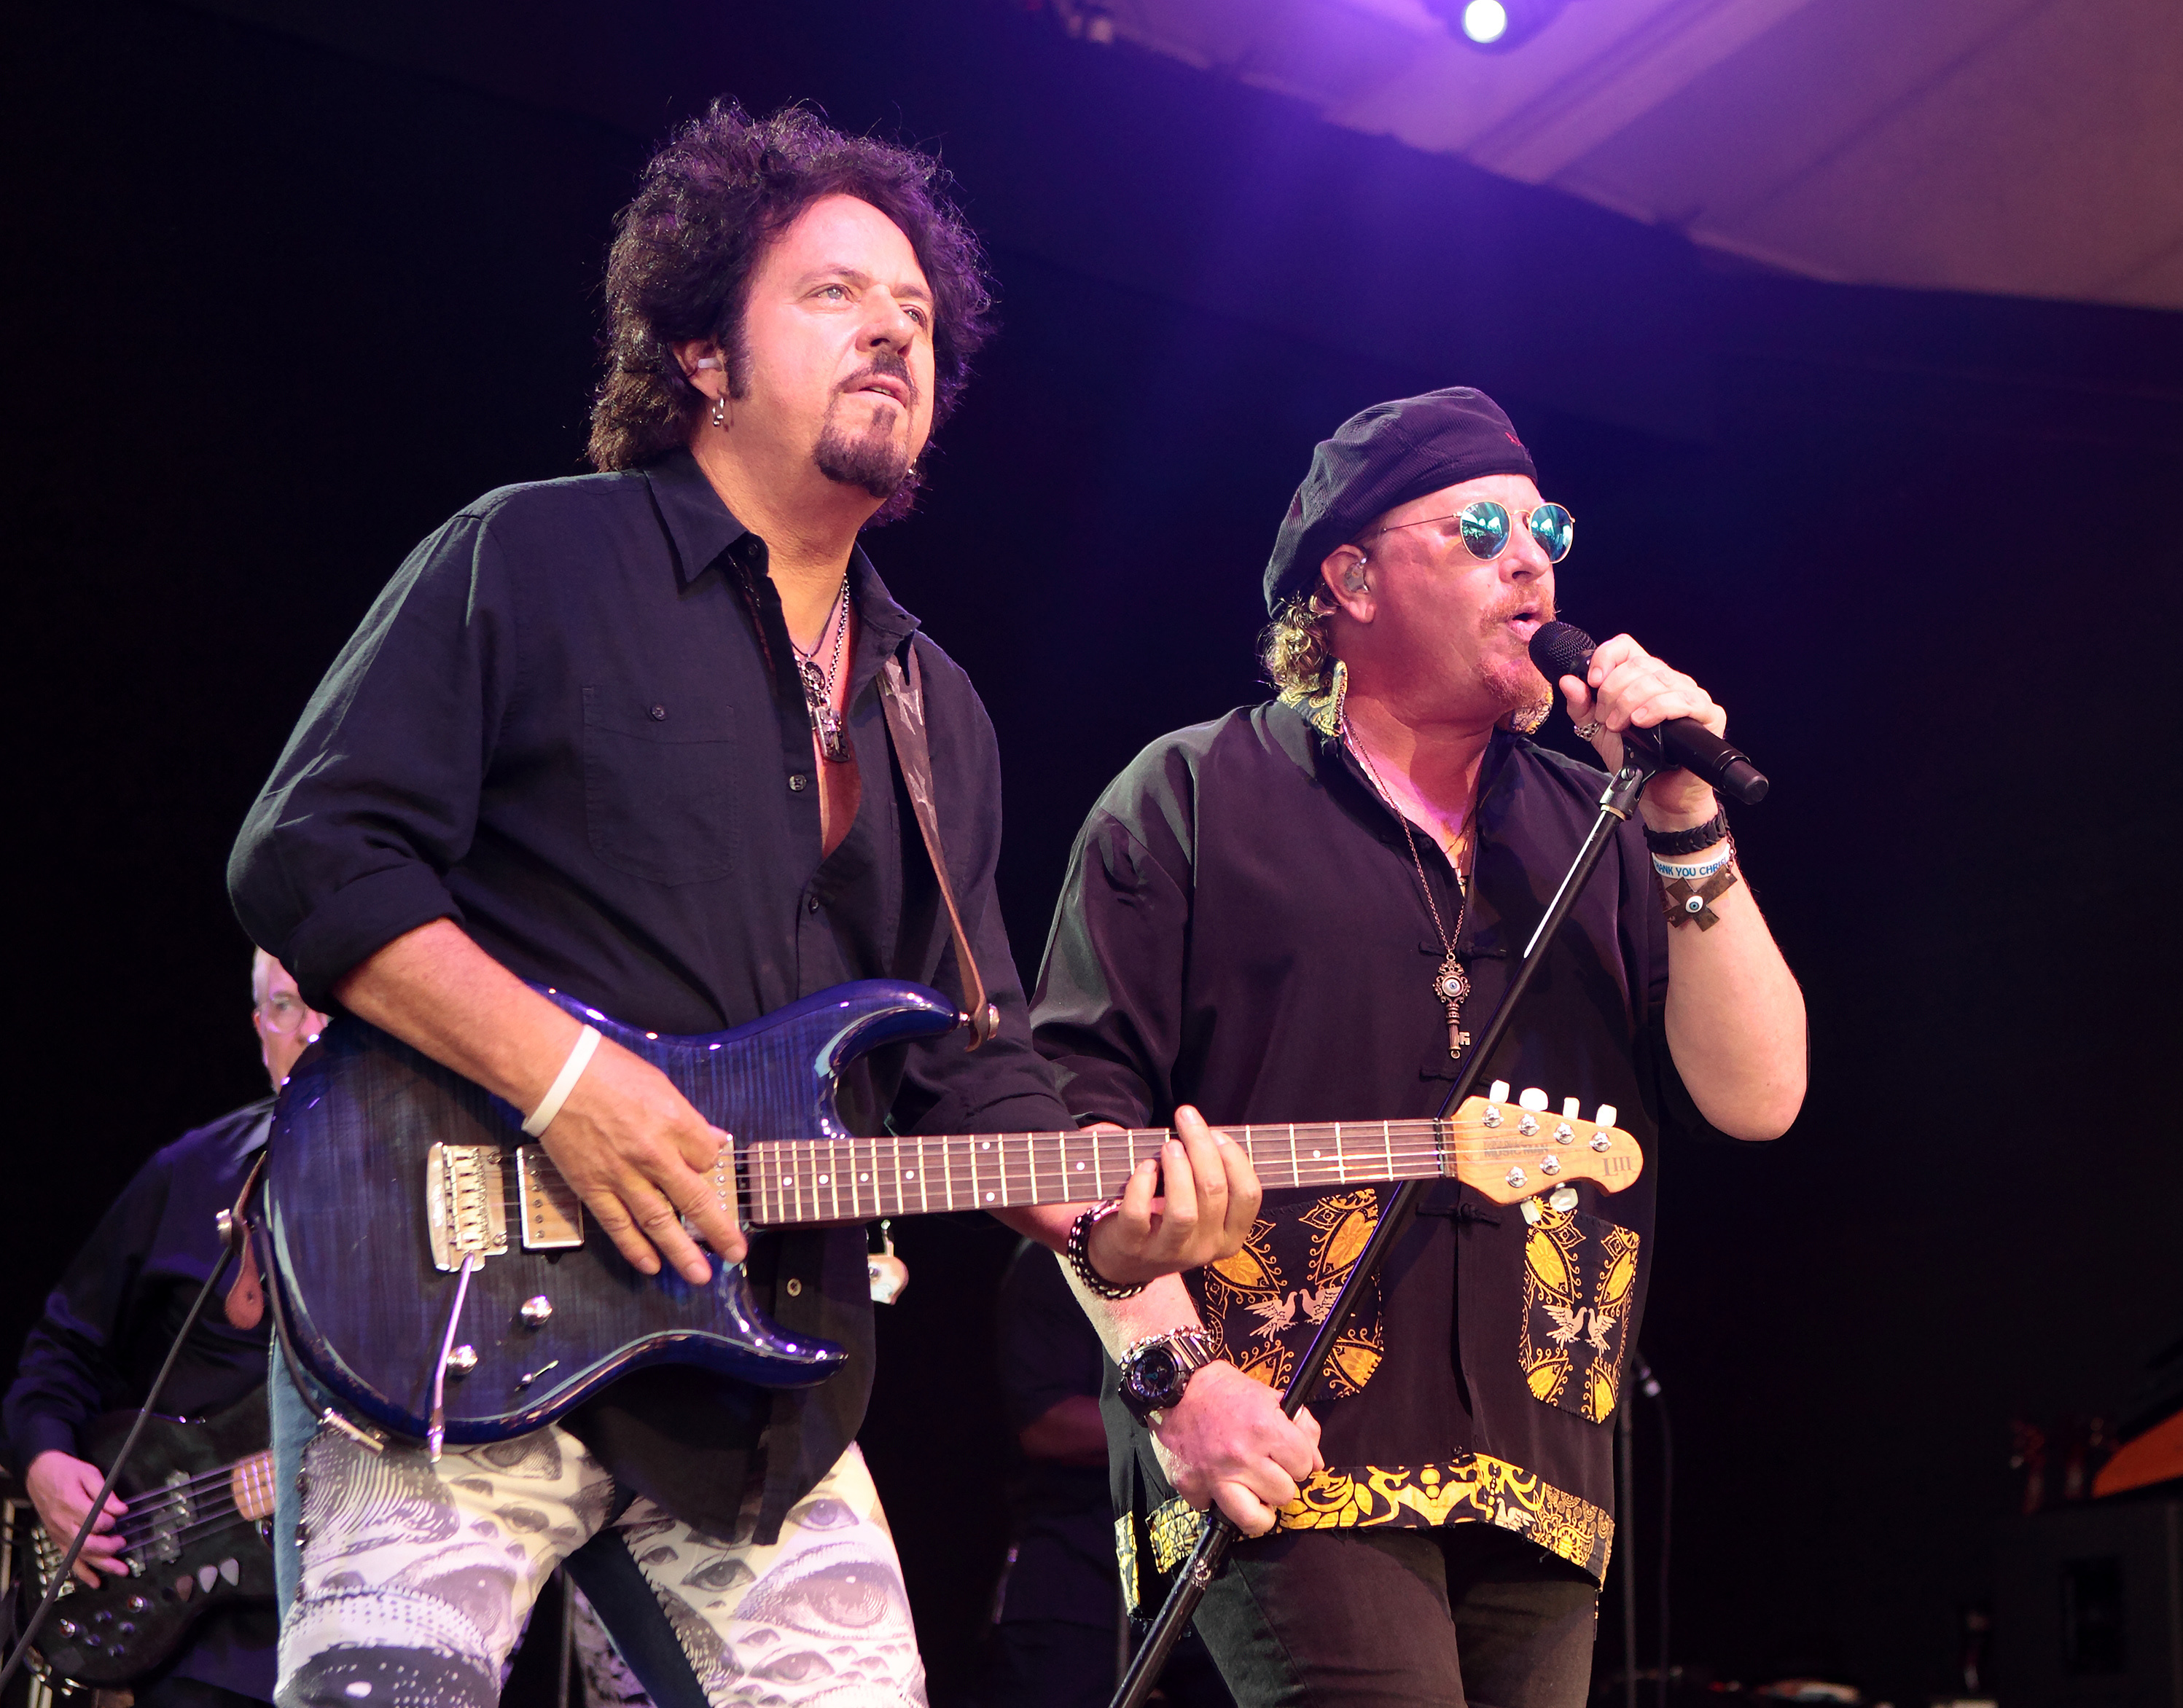 Toto returns to road to promote ALS awareness | The Spokesman-Review